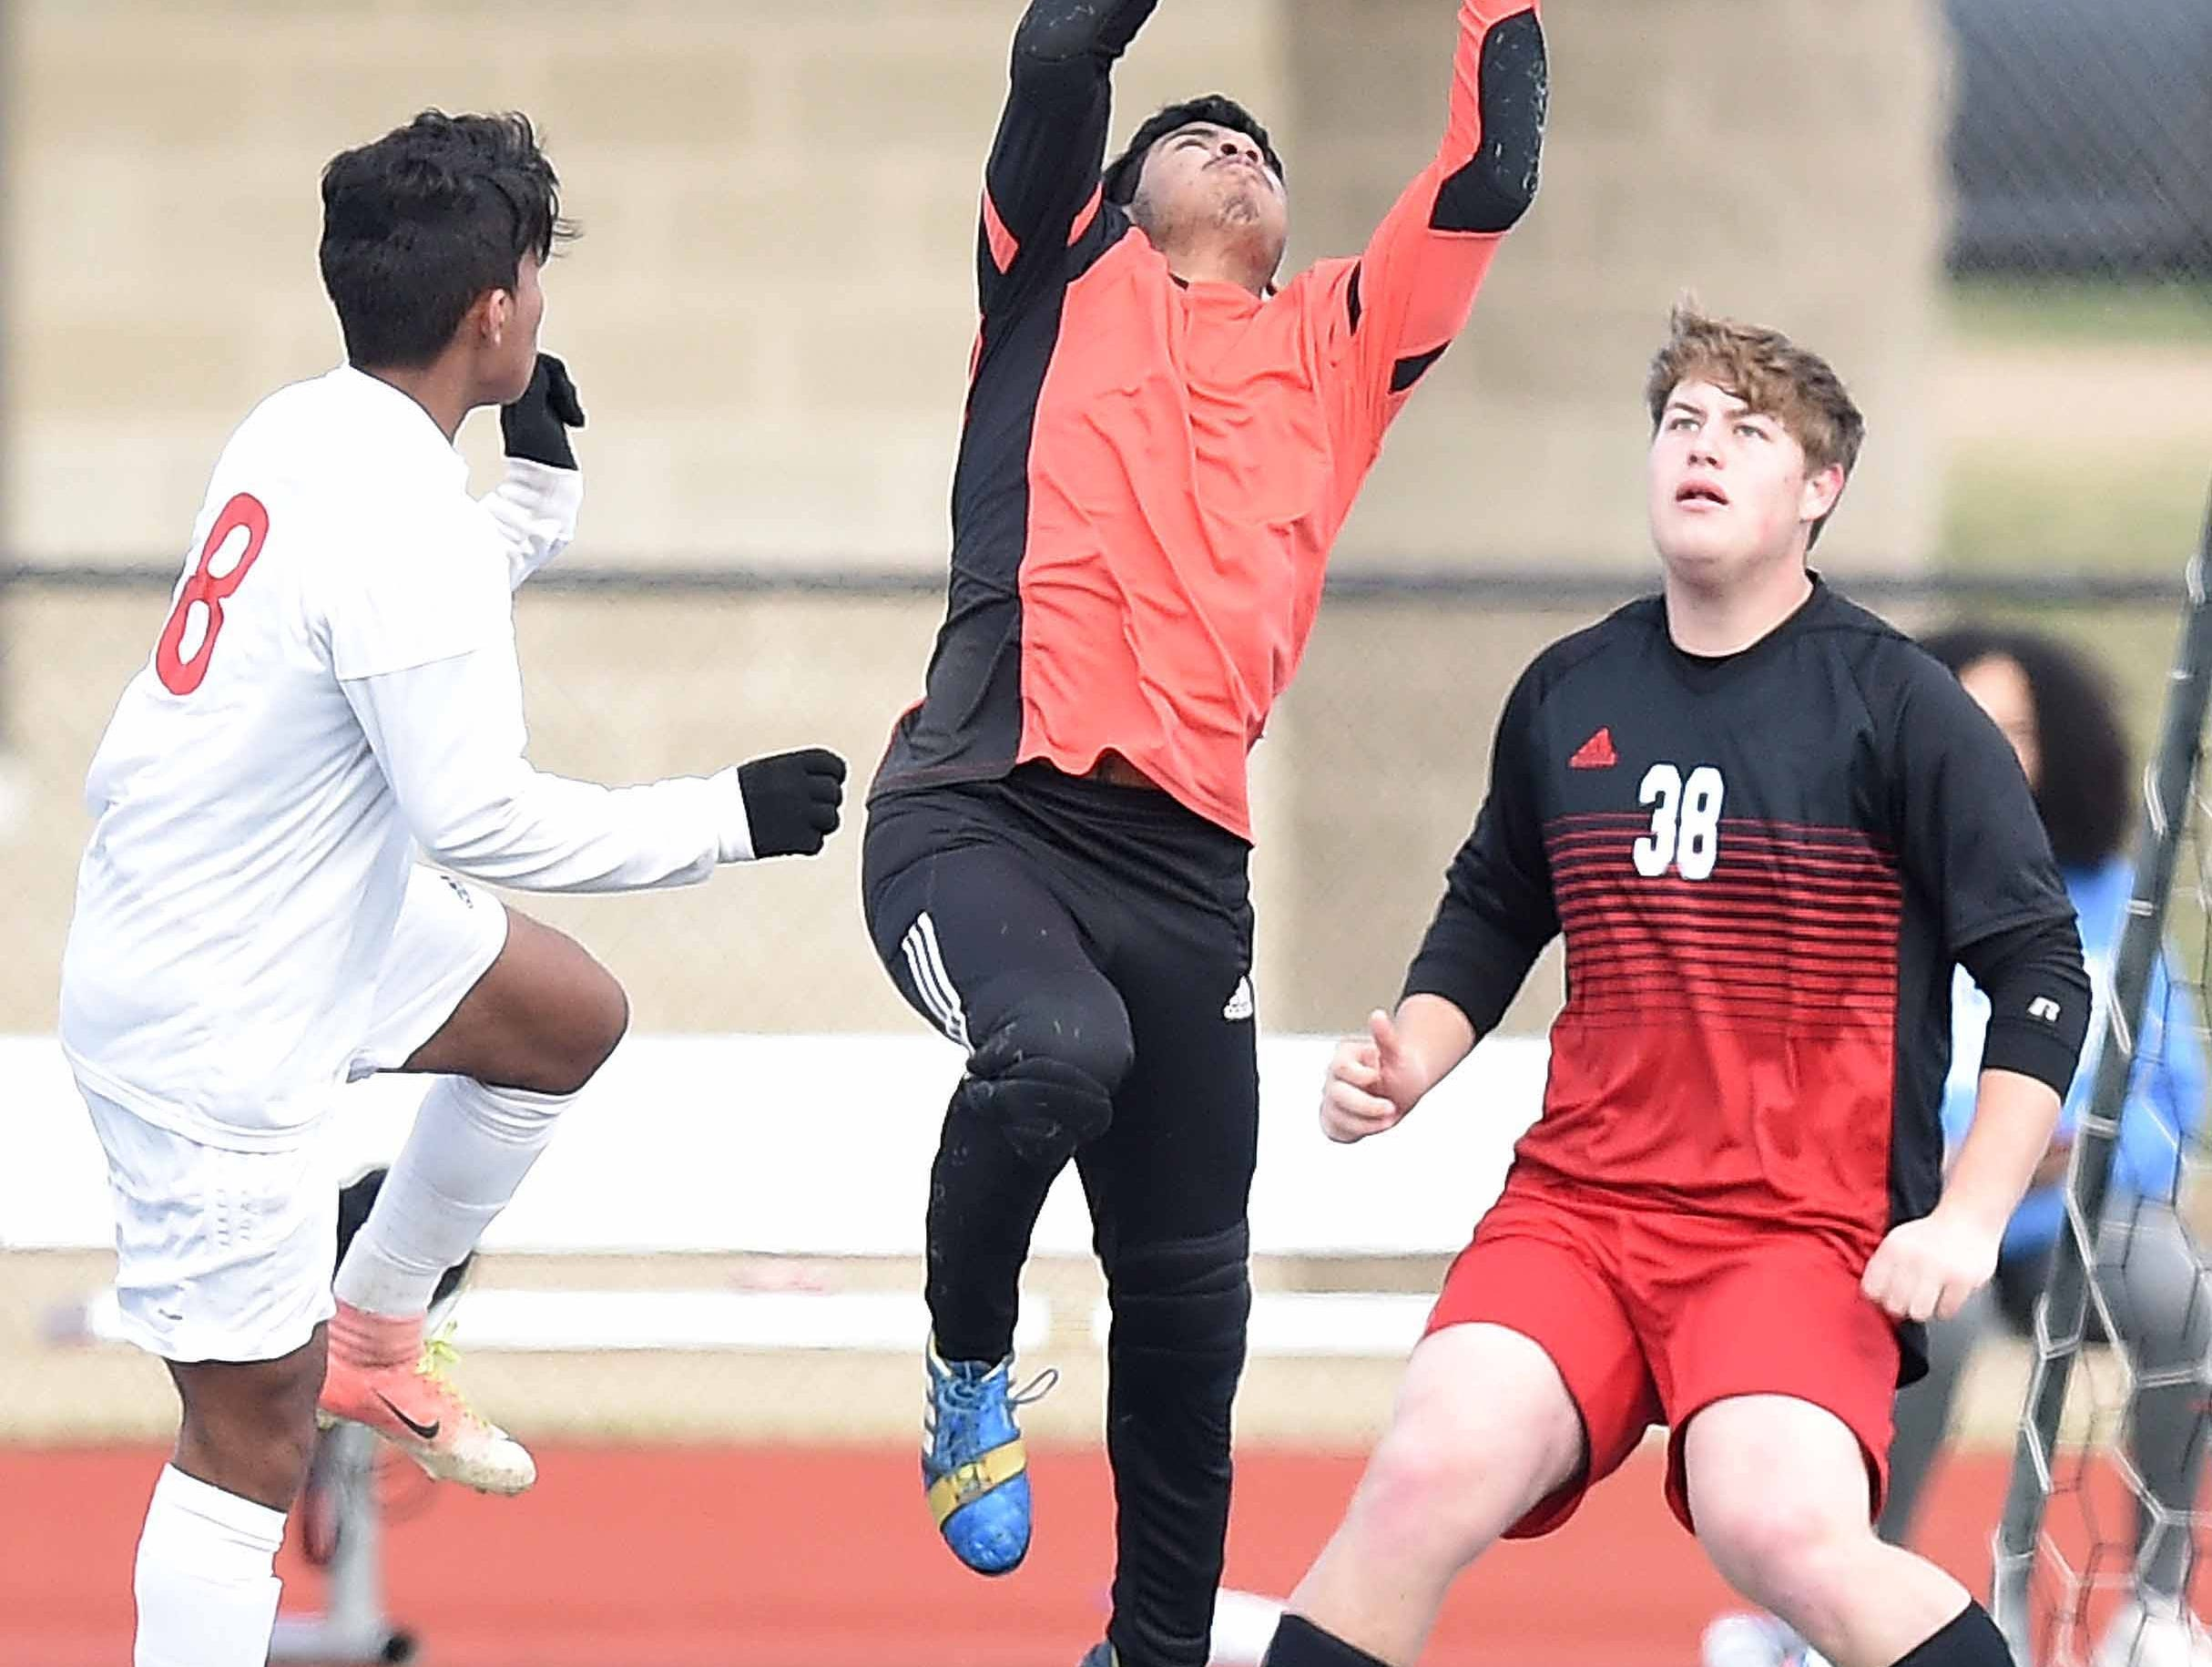 West Lauderdale's goalkeeper Ivan Betancourt leaps to make a save against Richland in the Class 4A state championship in the MHSAA BlueCross Blue Shield of Mississippi Soccer Classic on Saturday, February 9, 2019, at Ridgeland High School in Ridgeland, Miss.